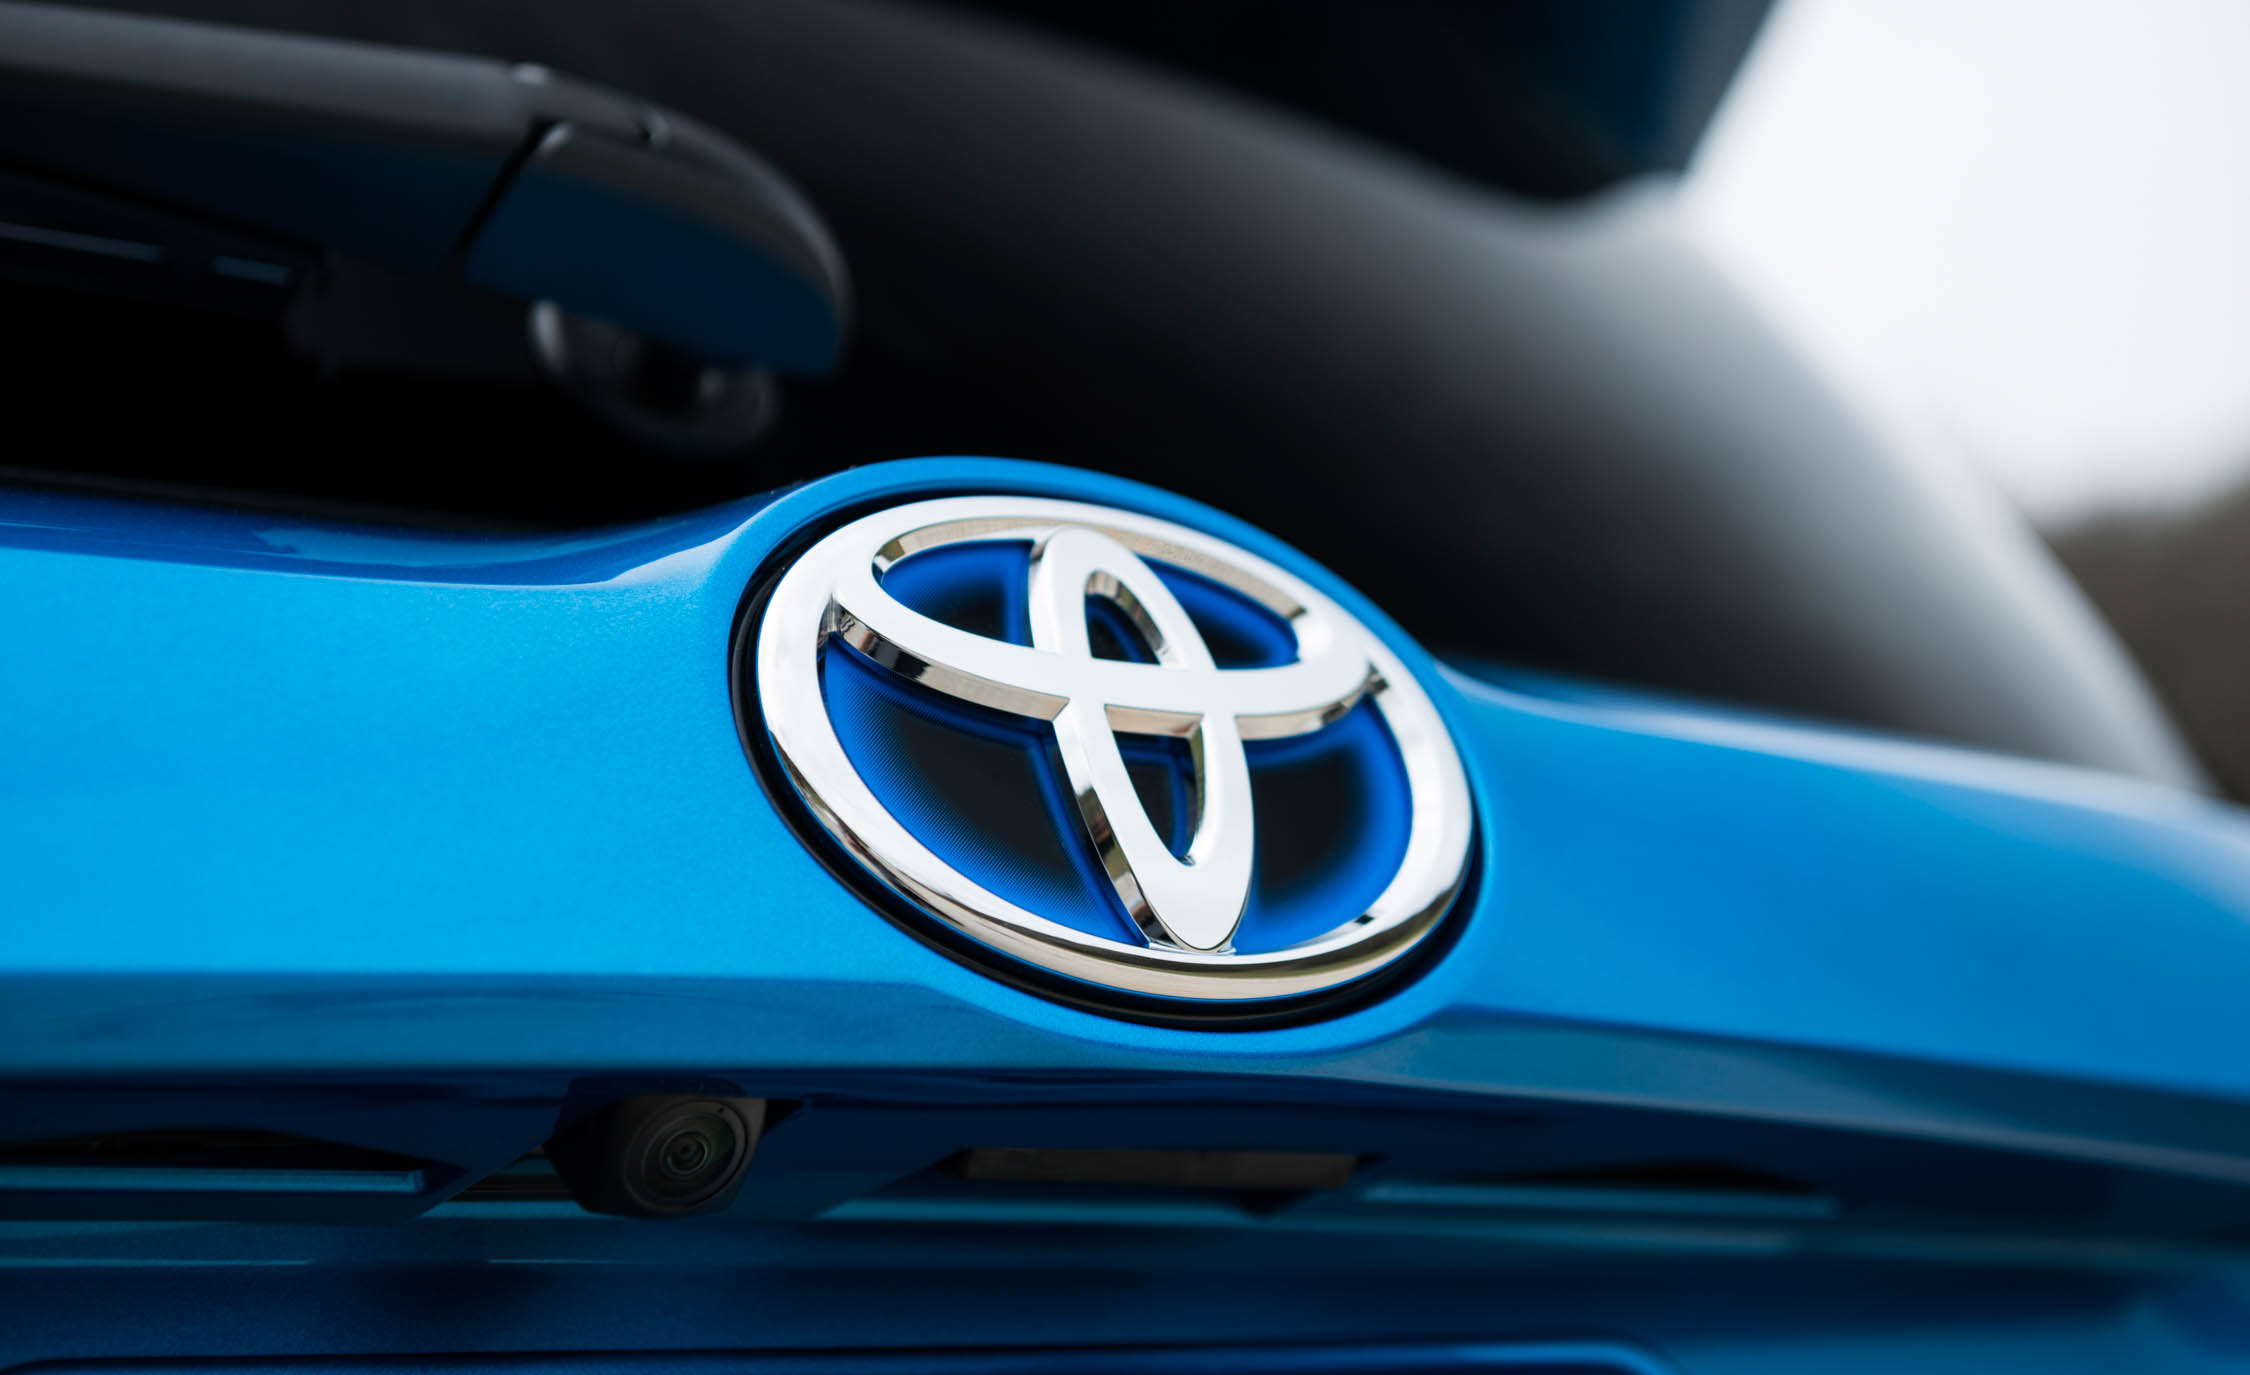 2016 Toyota RAV4 Hybrid Exterior Rear Badge